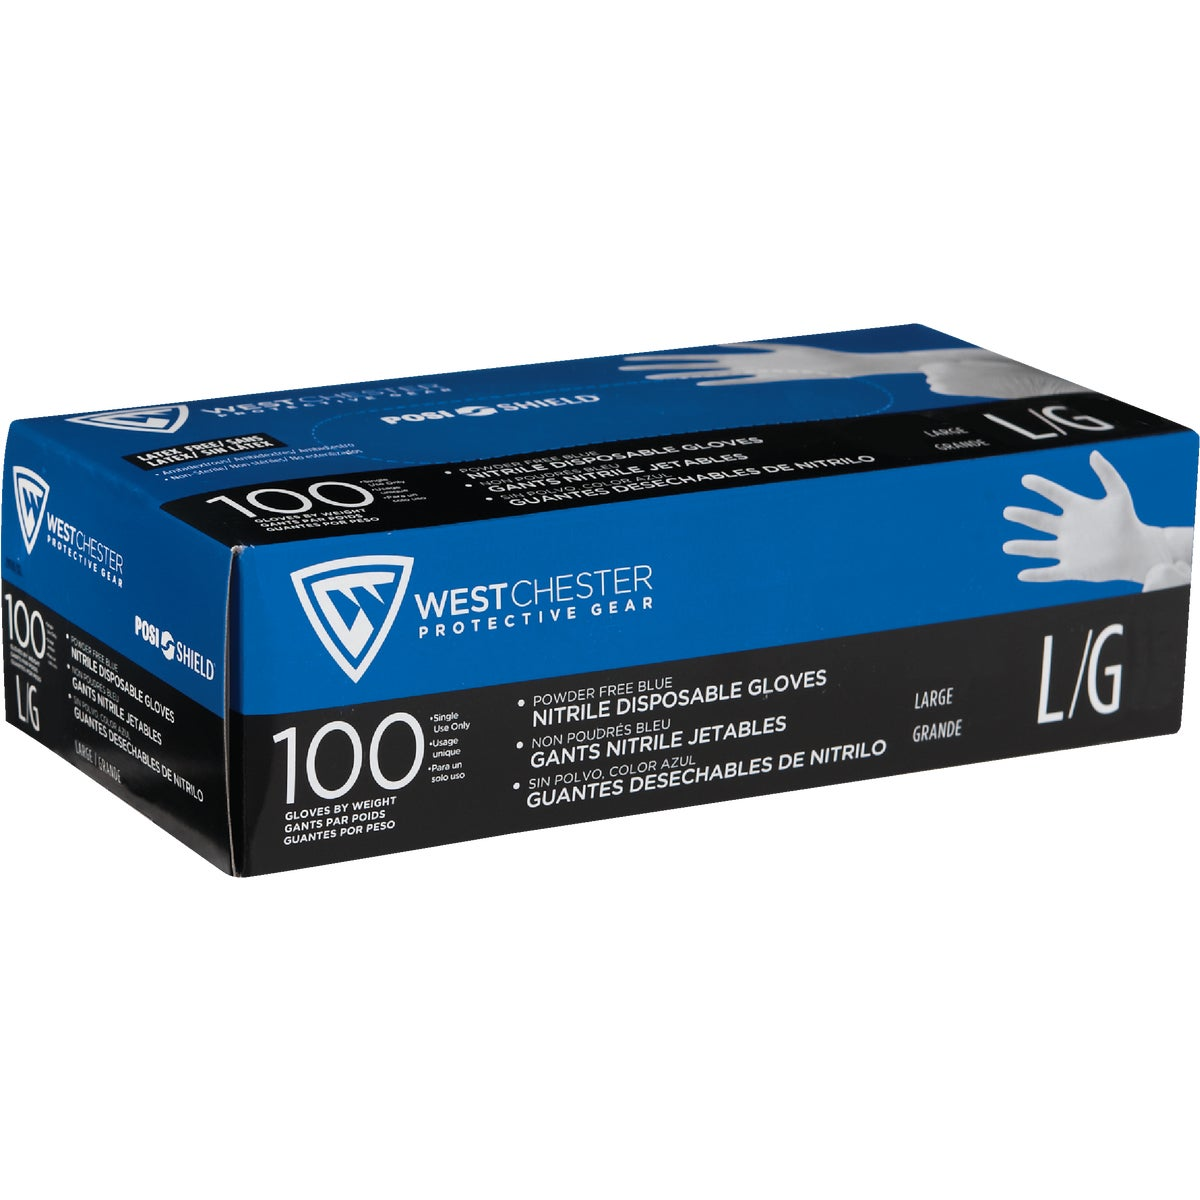 LG BLUE NITRILE GLOVES - 2910/L by West Chester Incom